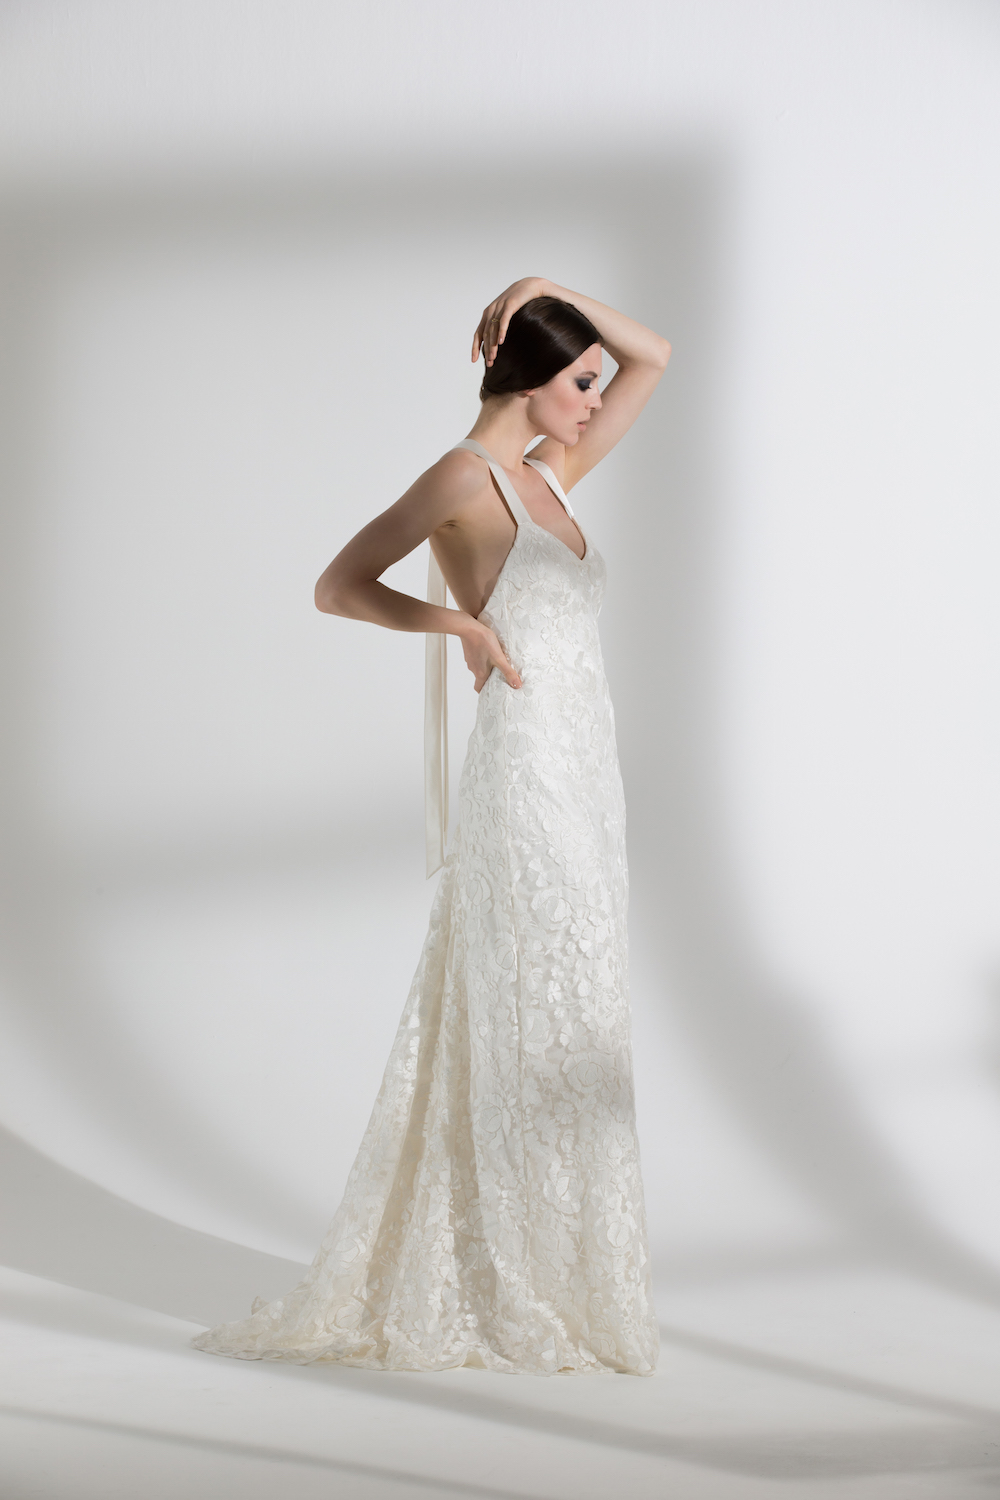 Primrose lace wedding dress by Halfpenny London